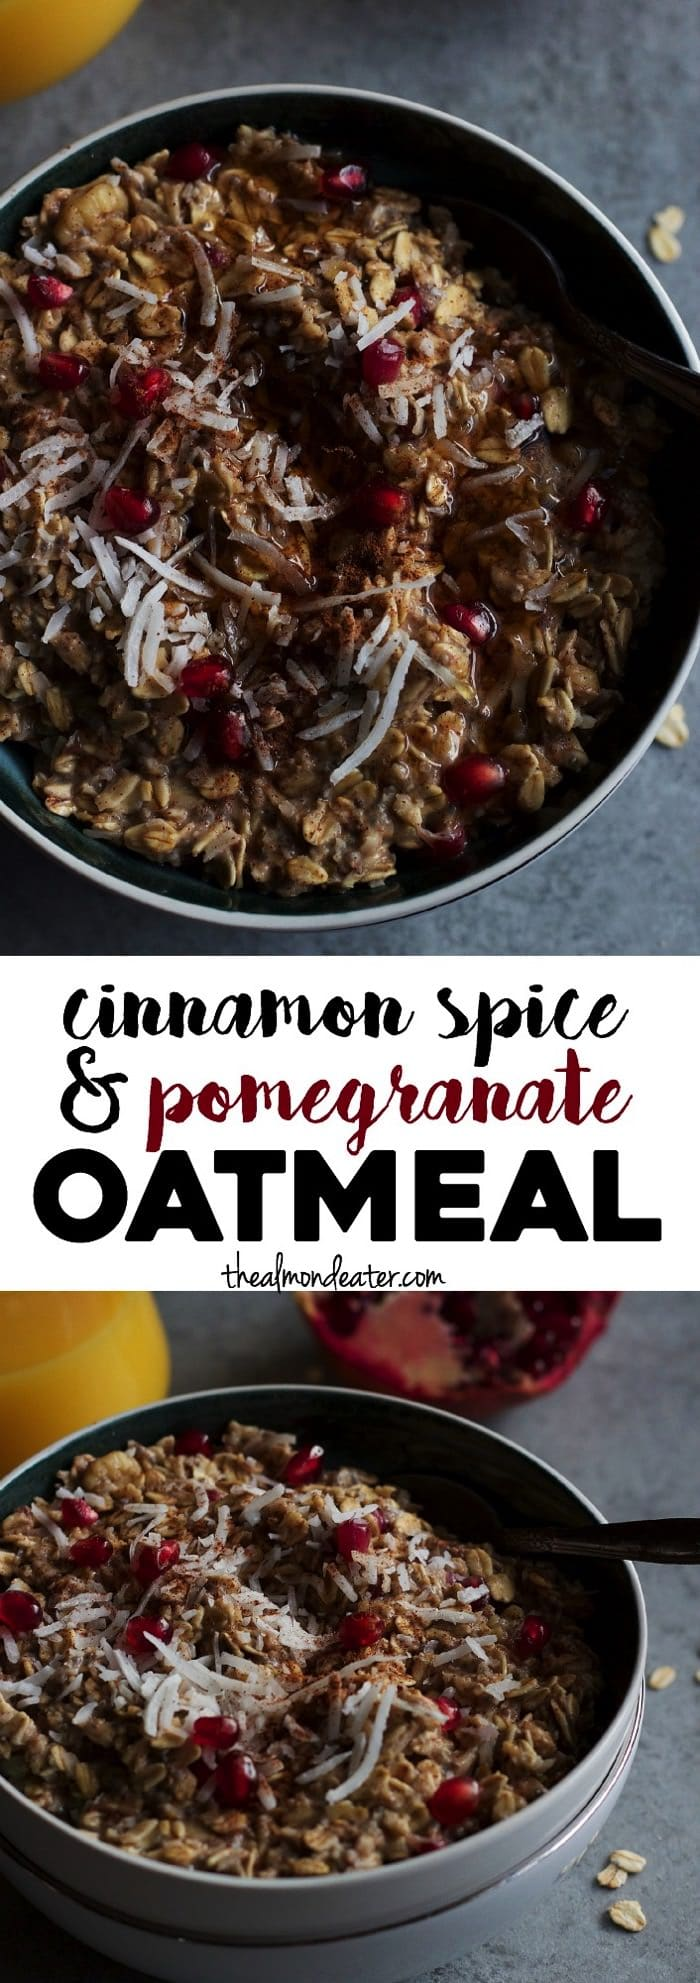 Cinnamon Spice and Pomegranate Oatmeal